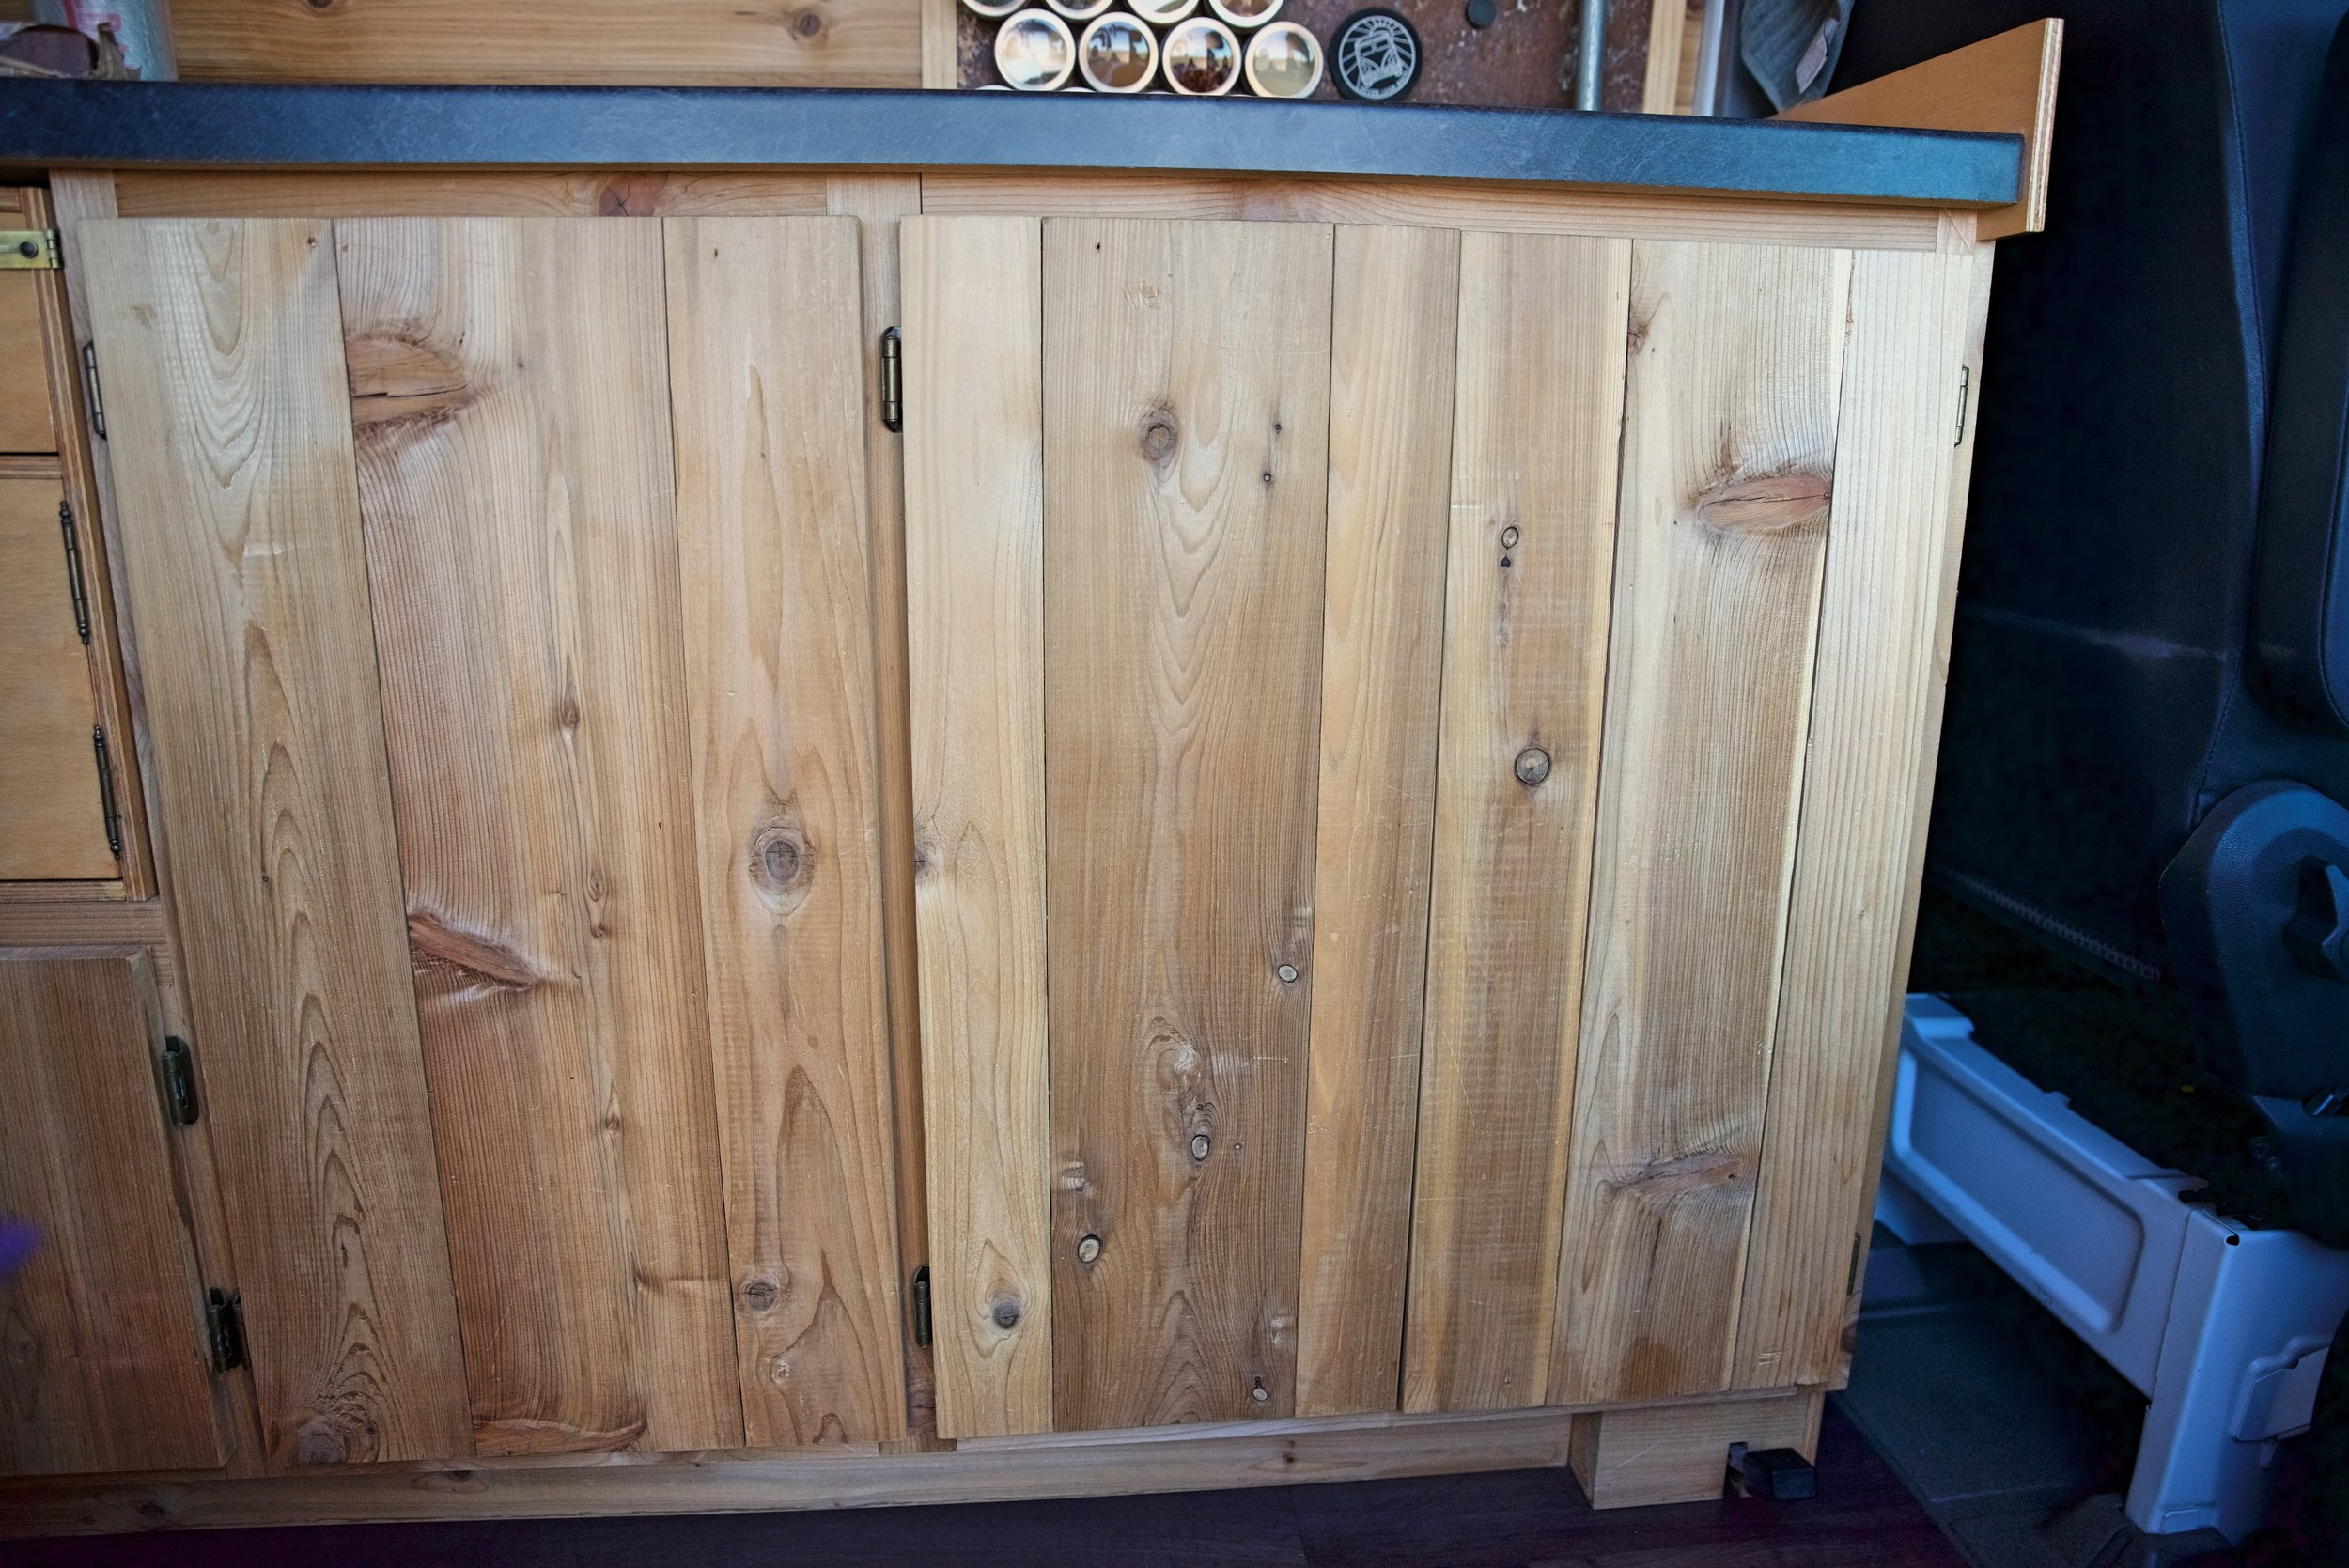 The  hinges  we picked are mostly hidden, so they have a very low, minimal profile on our cabinetry.